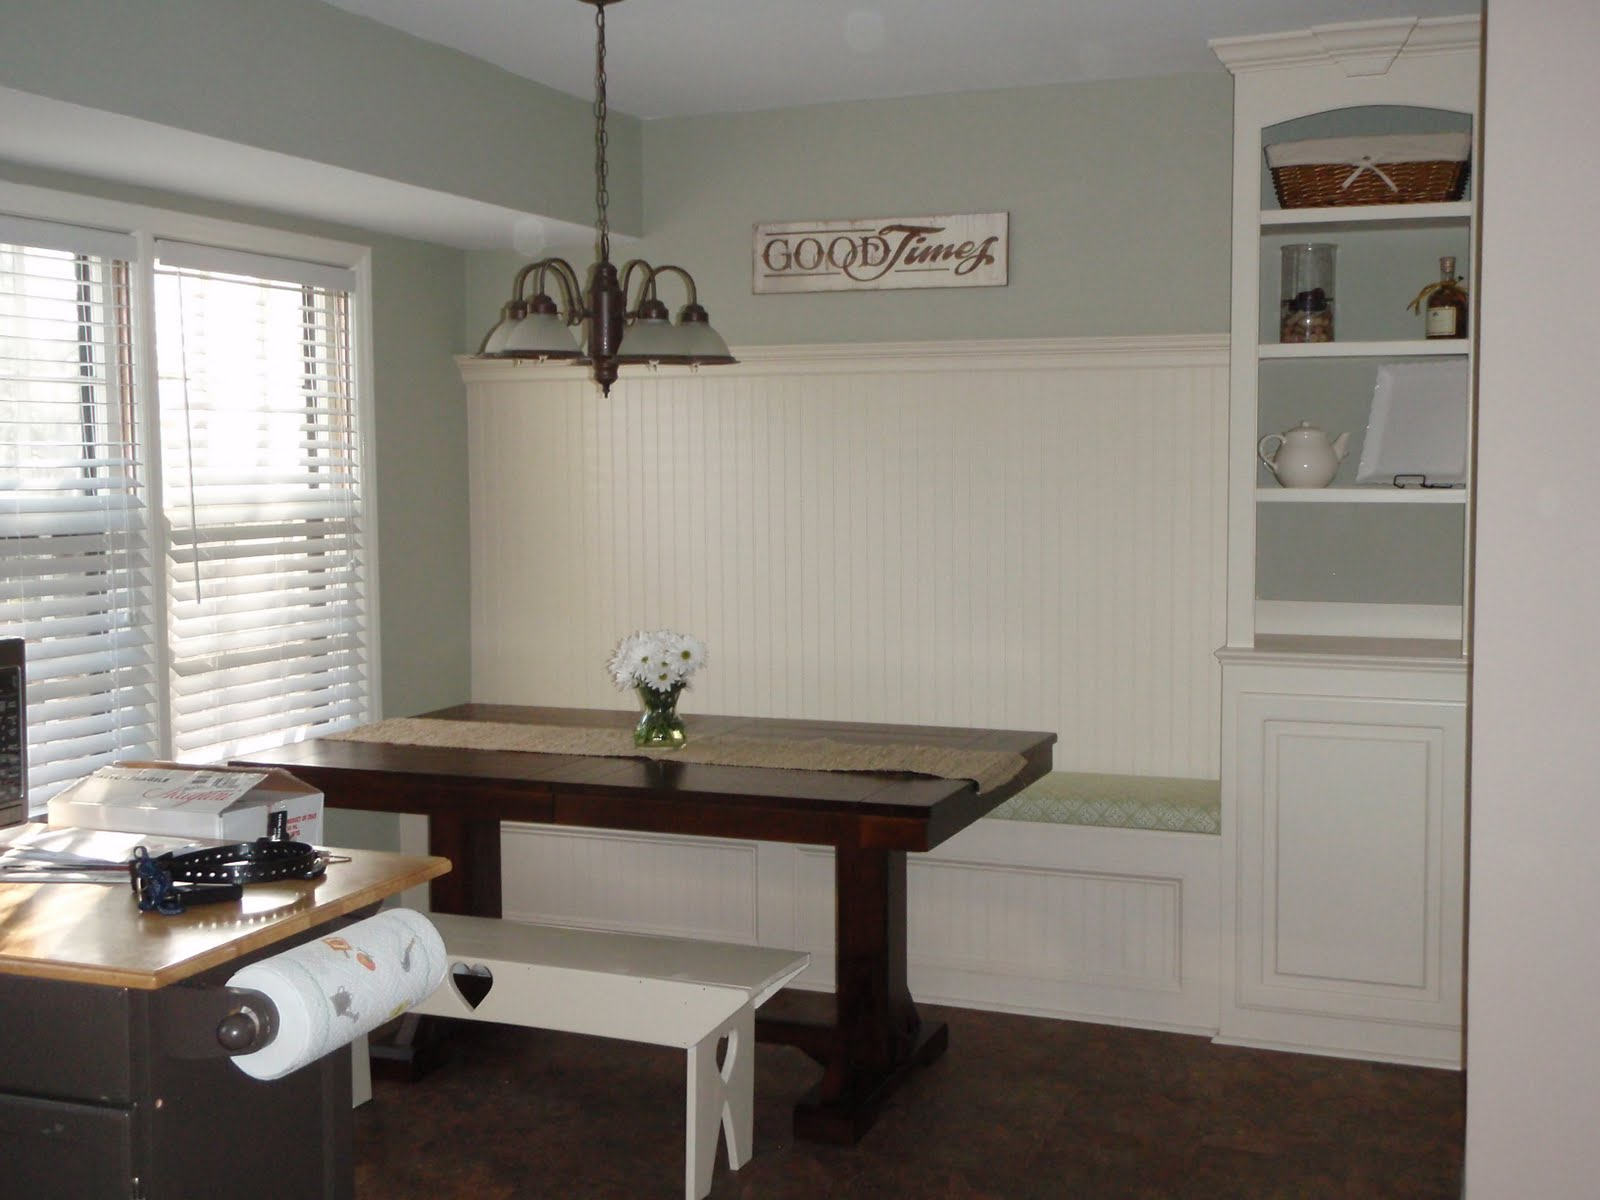 Remodelaholic kitchen renovation with built in banquette seating Kitchen bench seating